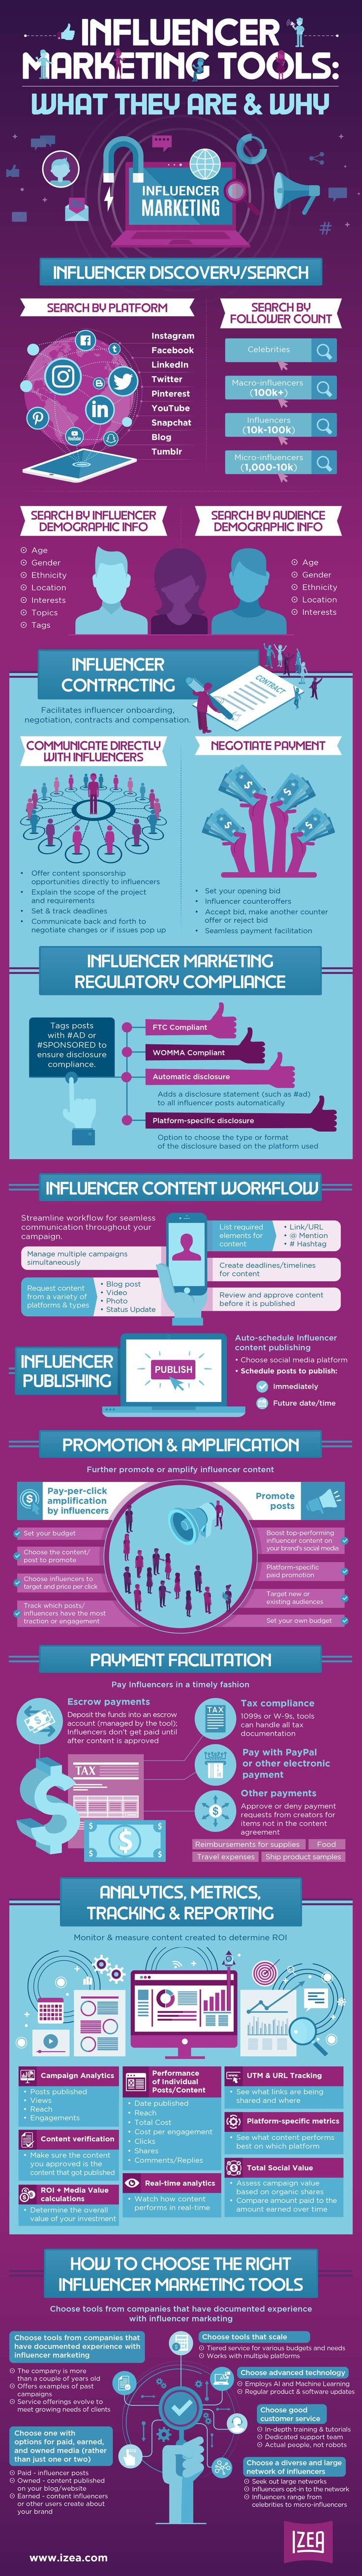 Infografía sobre #Marketing de Influencers. #SocialMedia